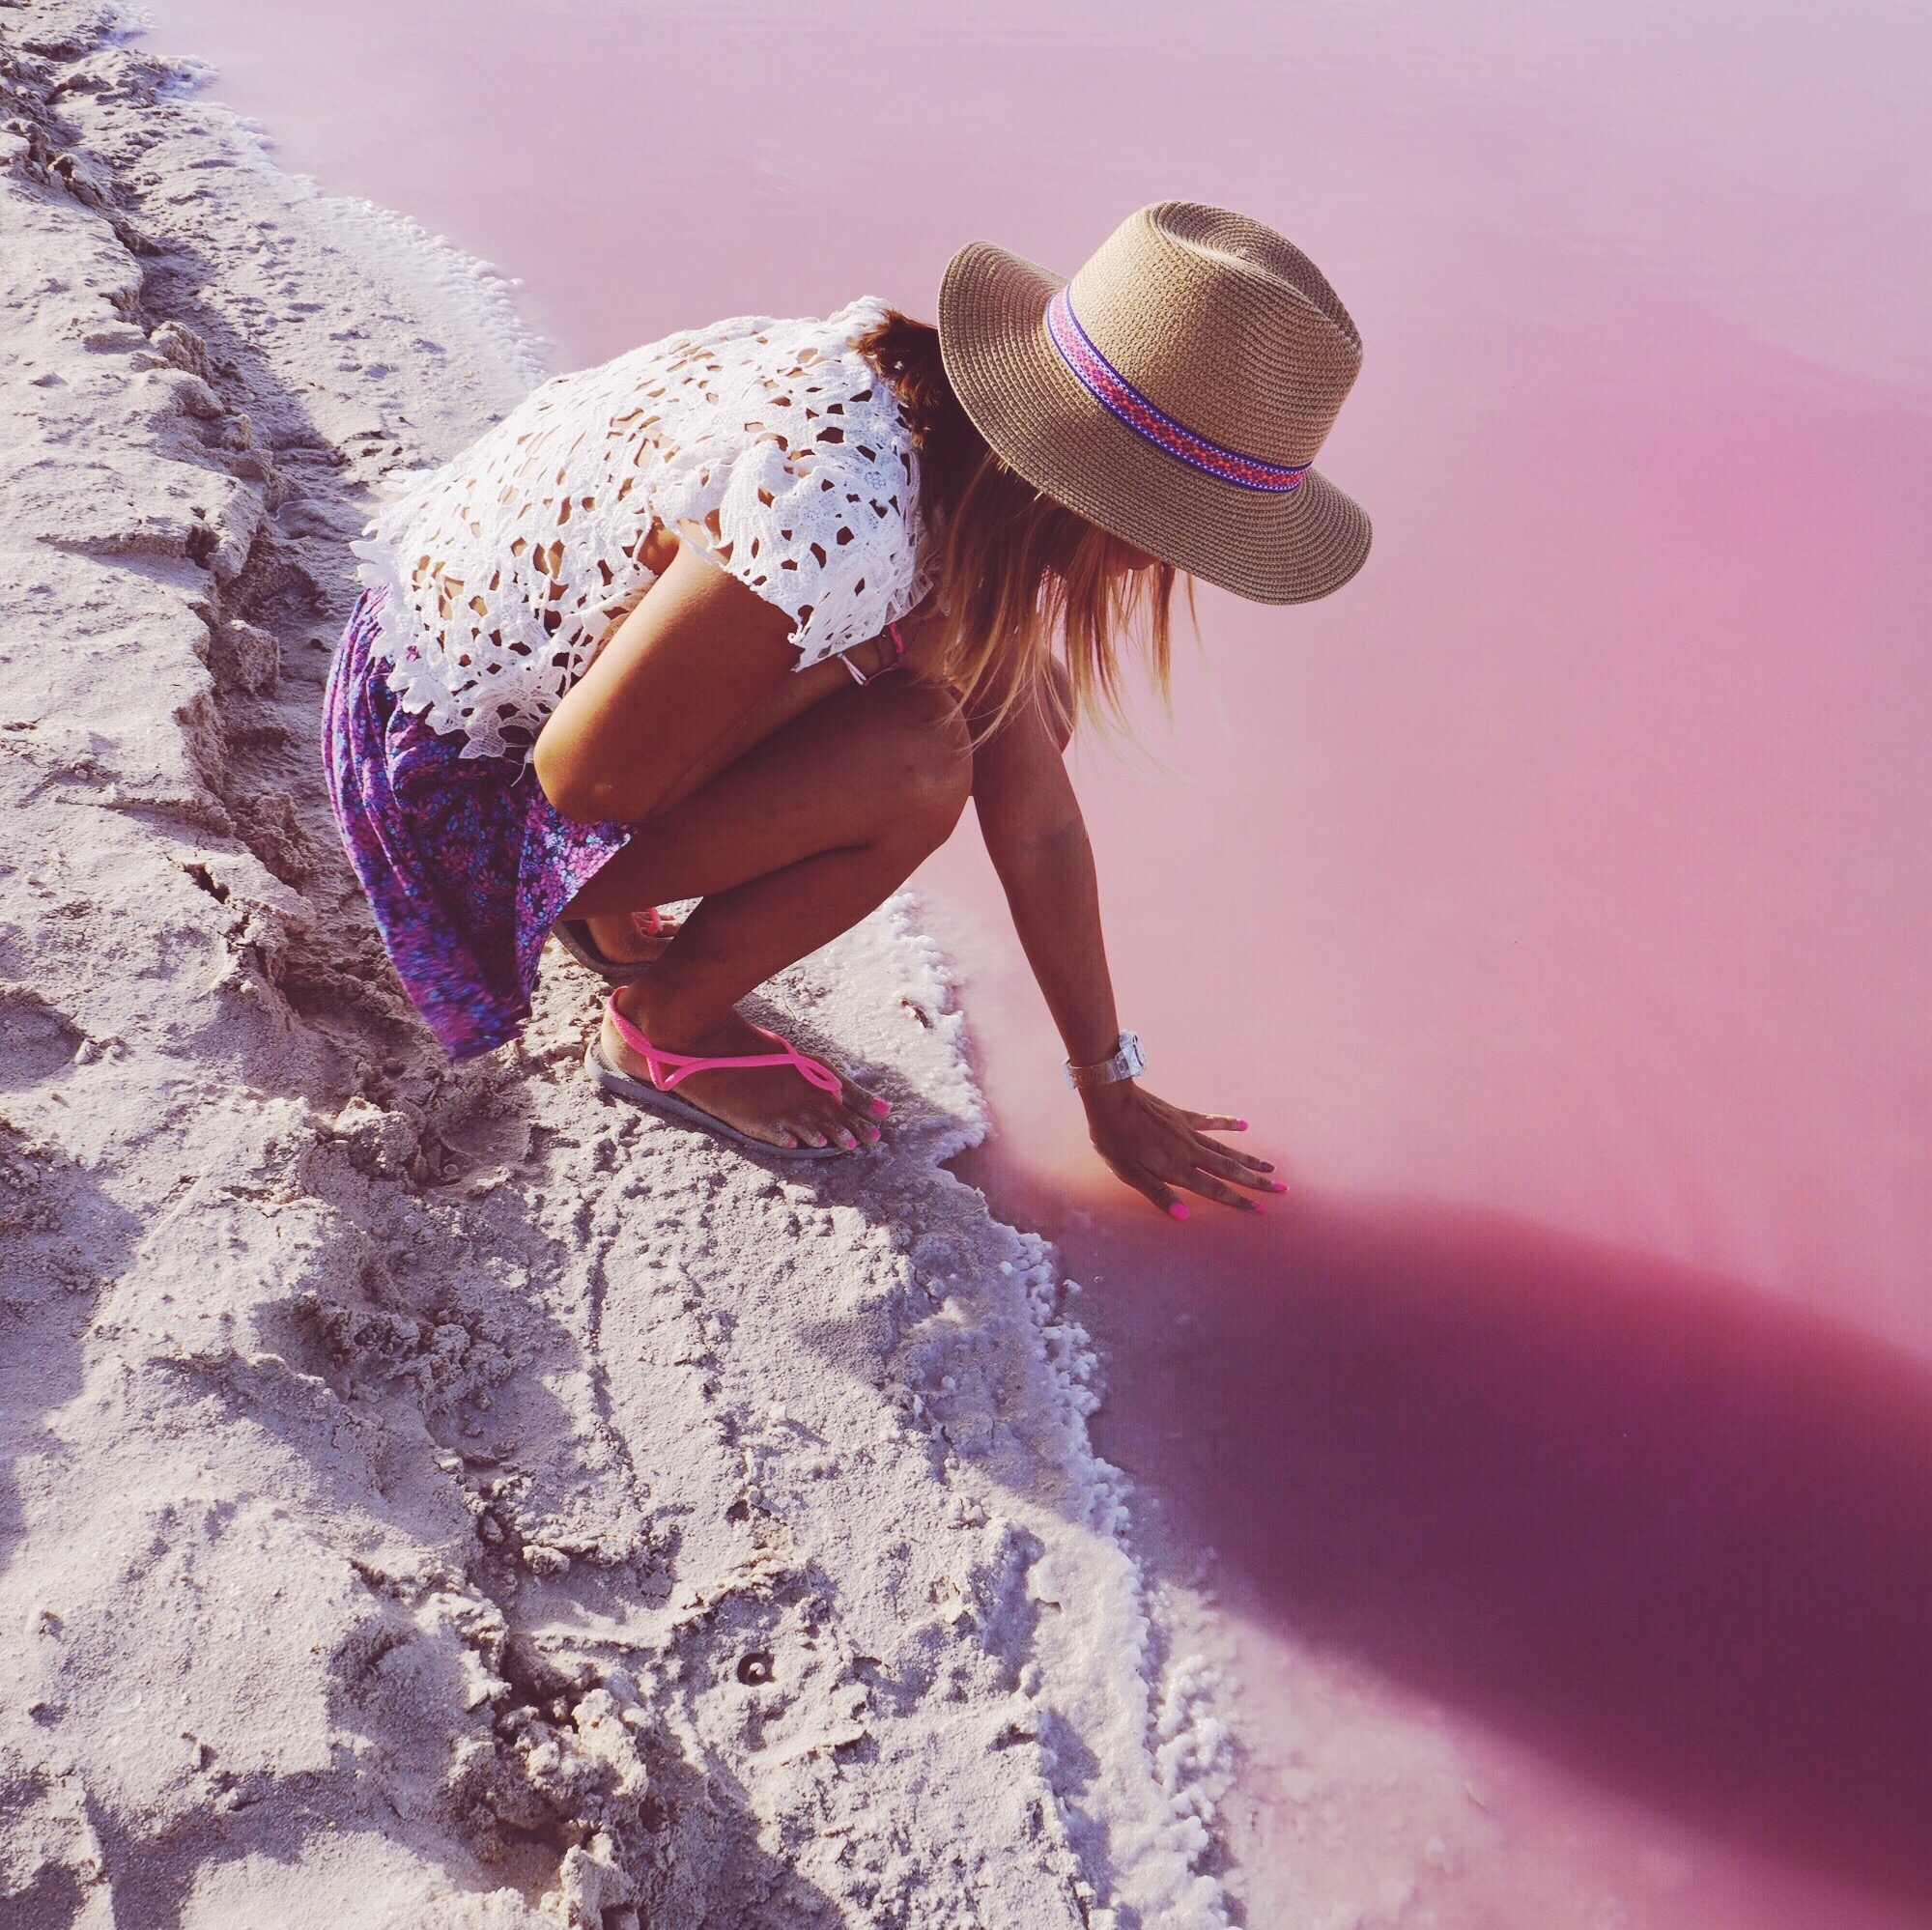 Have to touch that pink water!